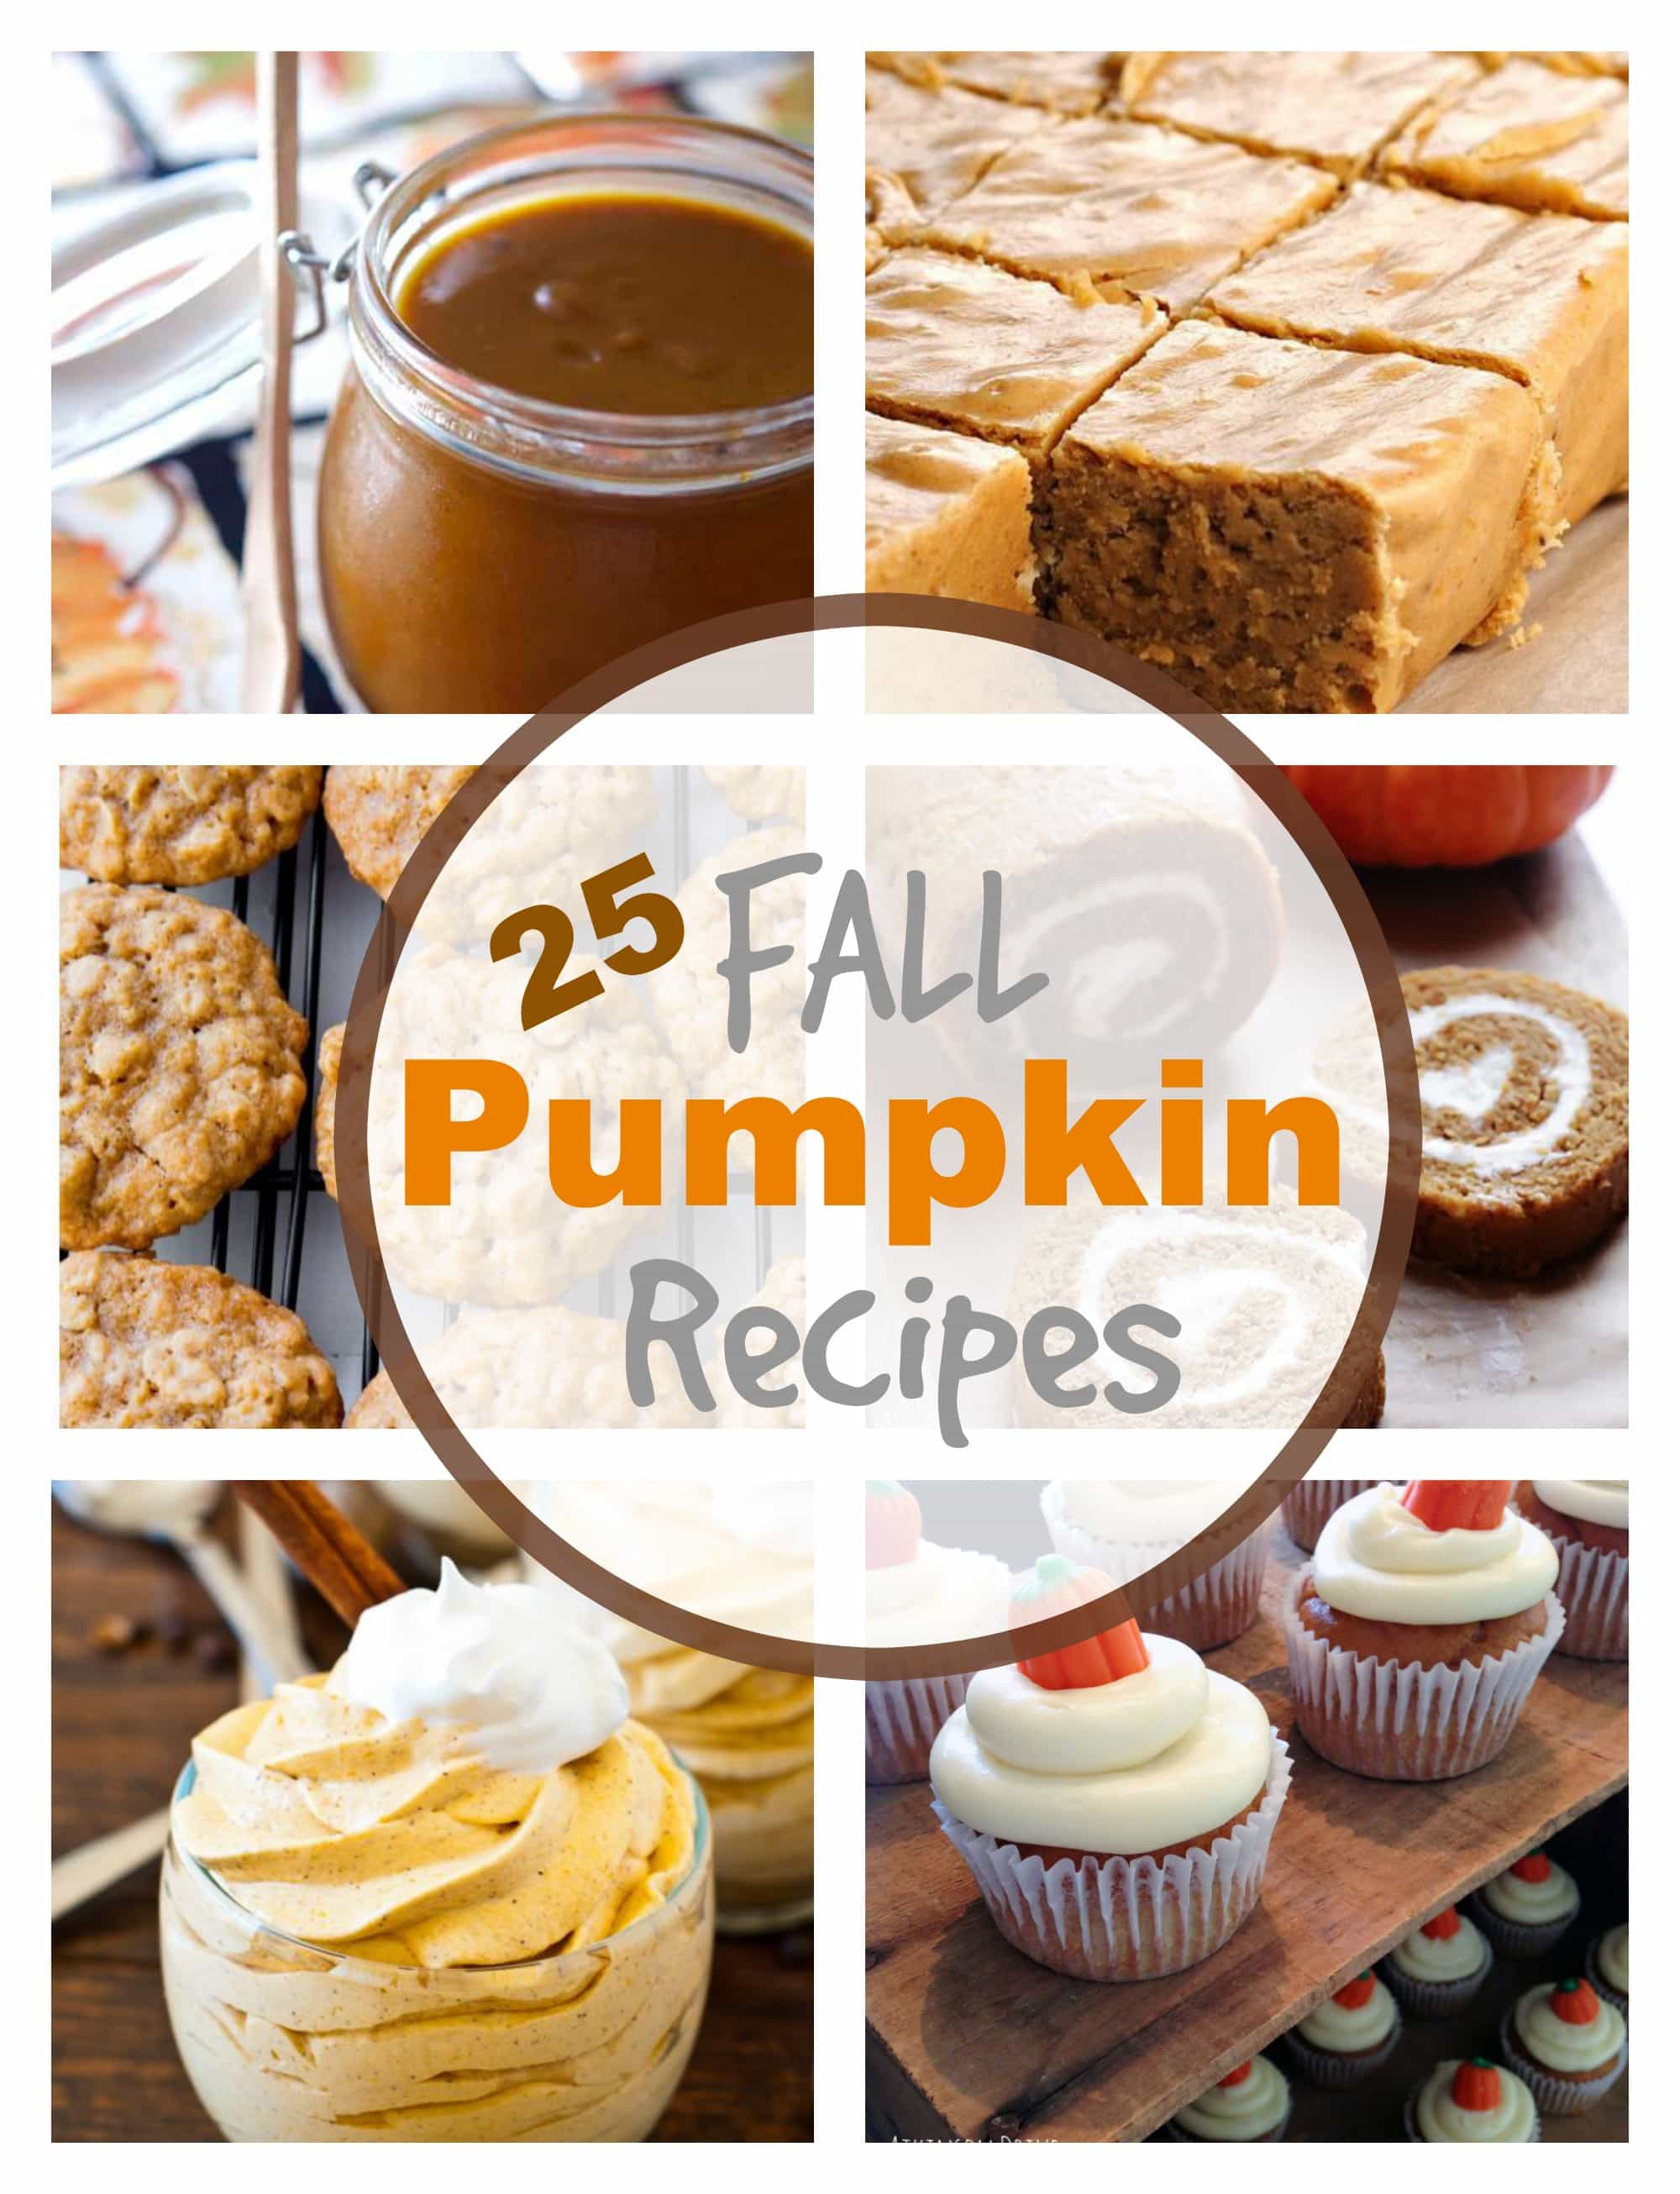 Recipe For Pumpkin Spice Cake With Cream Cheese Frosting